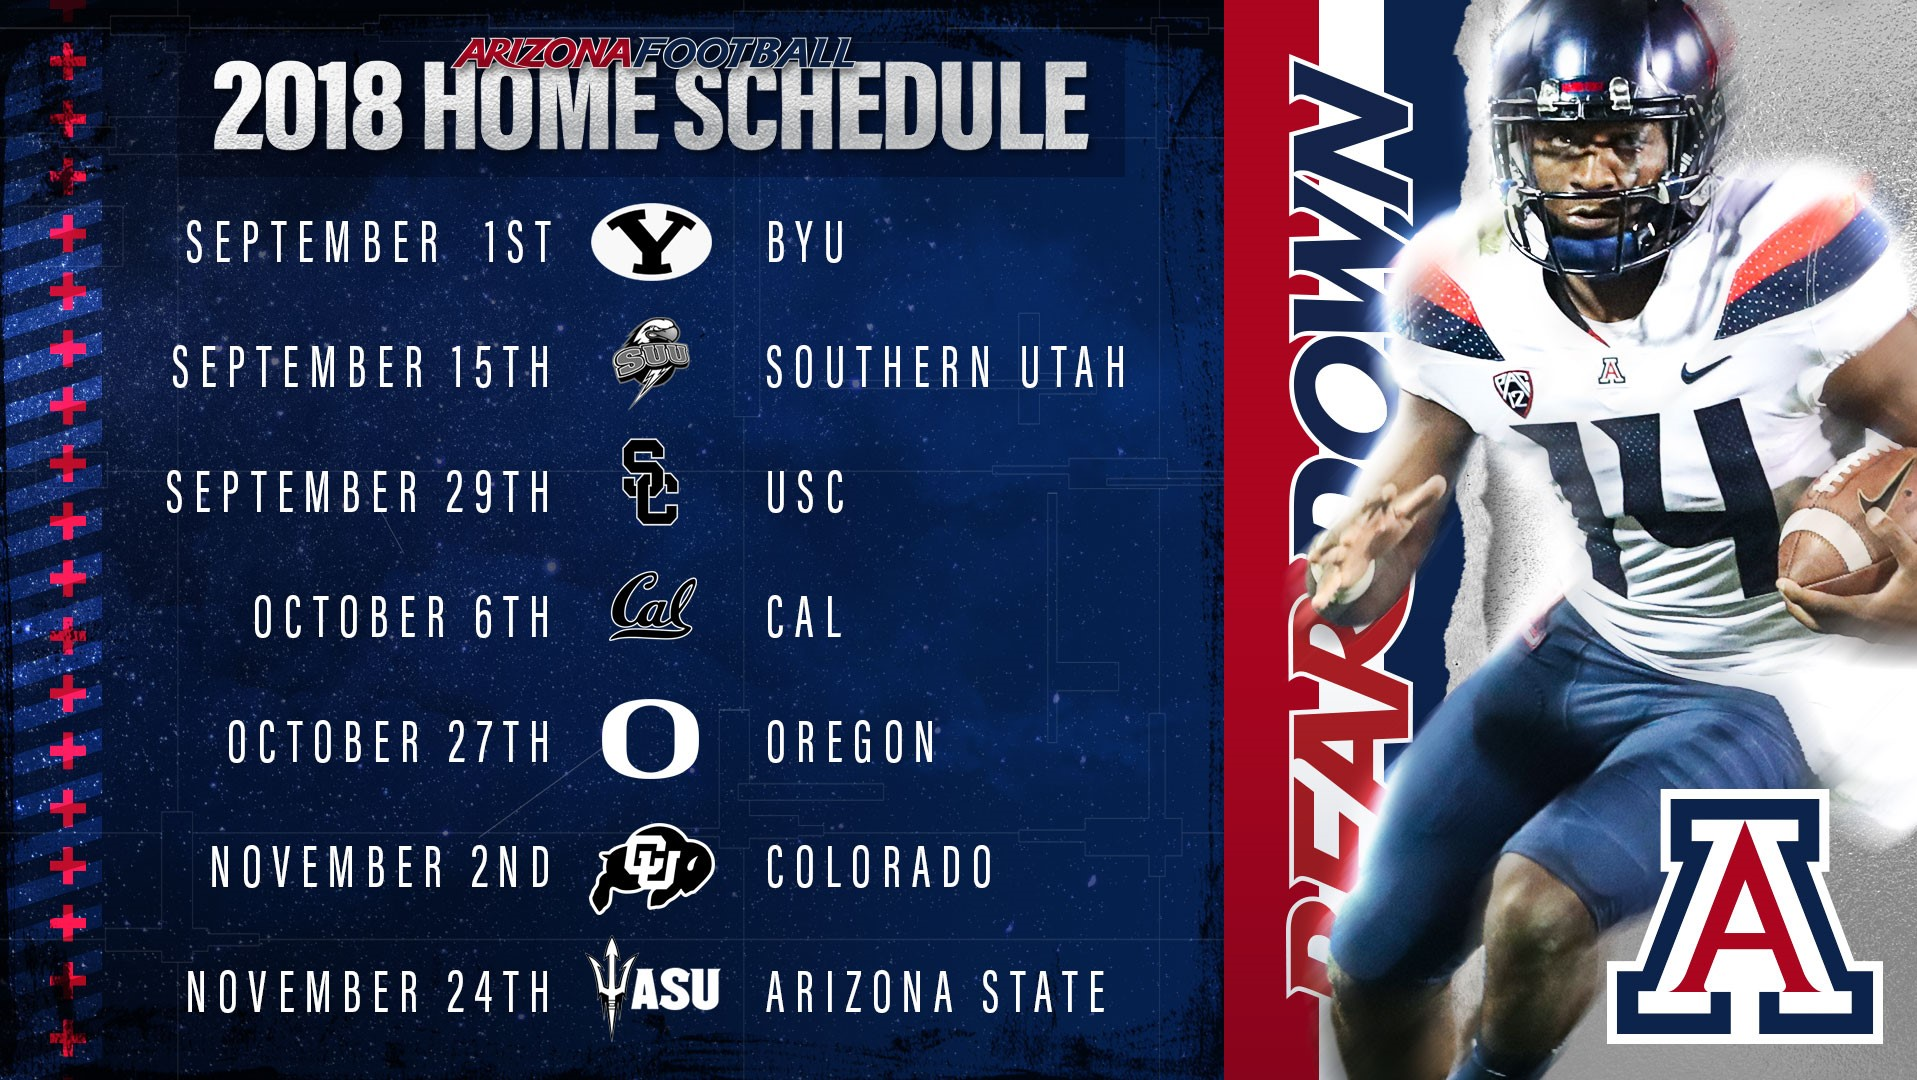 Schedule Released For 2018 Arizona Football Season - University of ... 984cb7b66590f